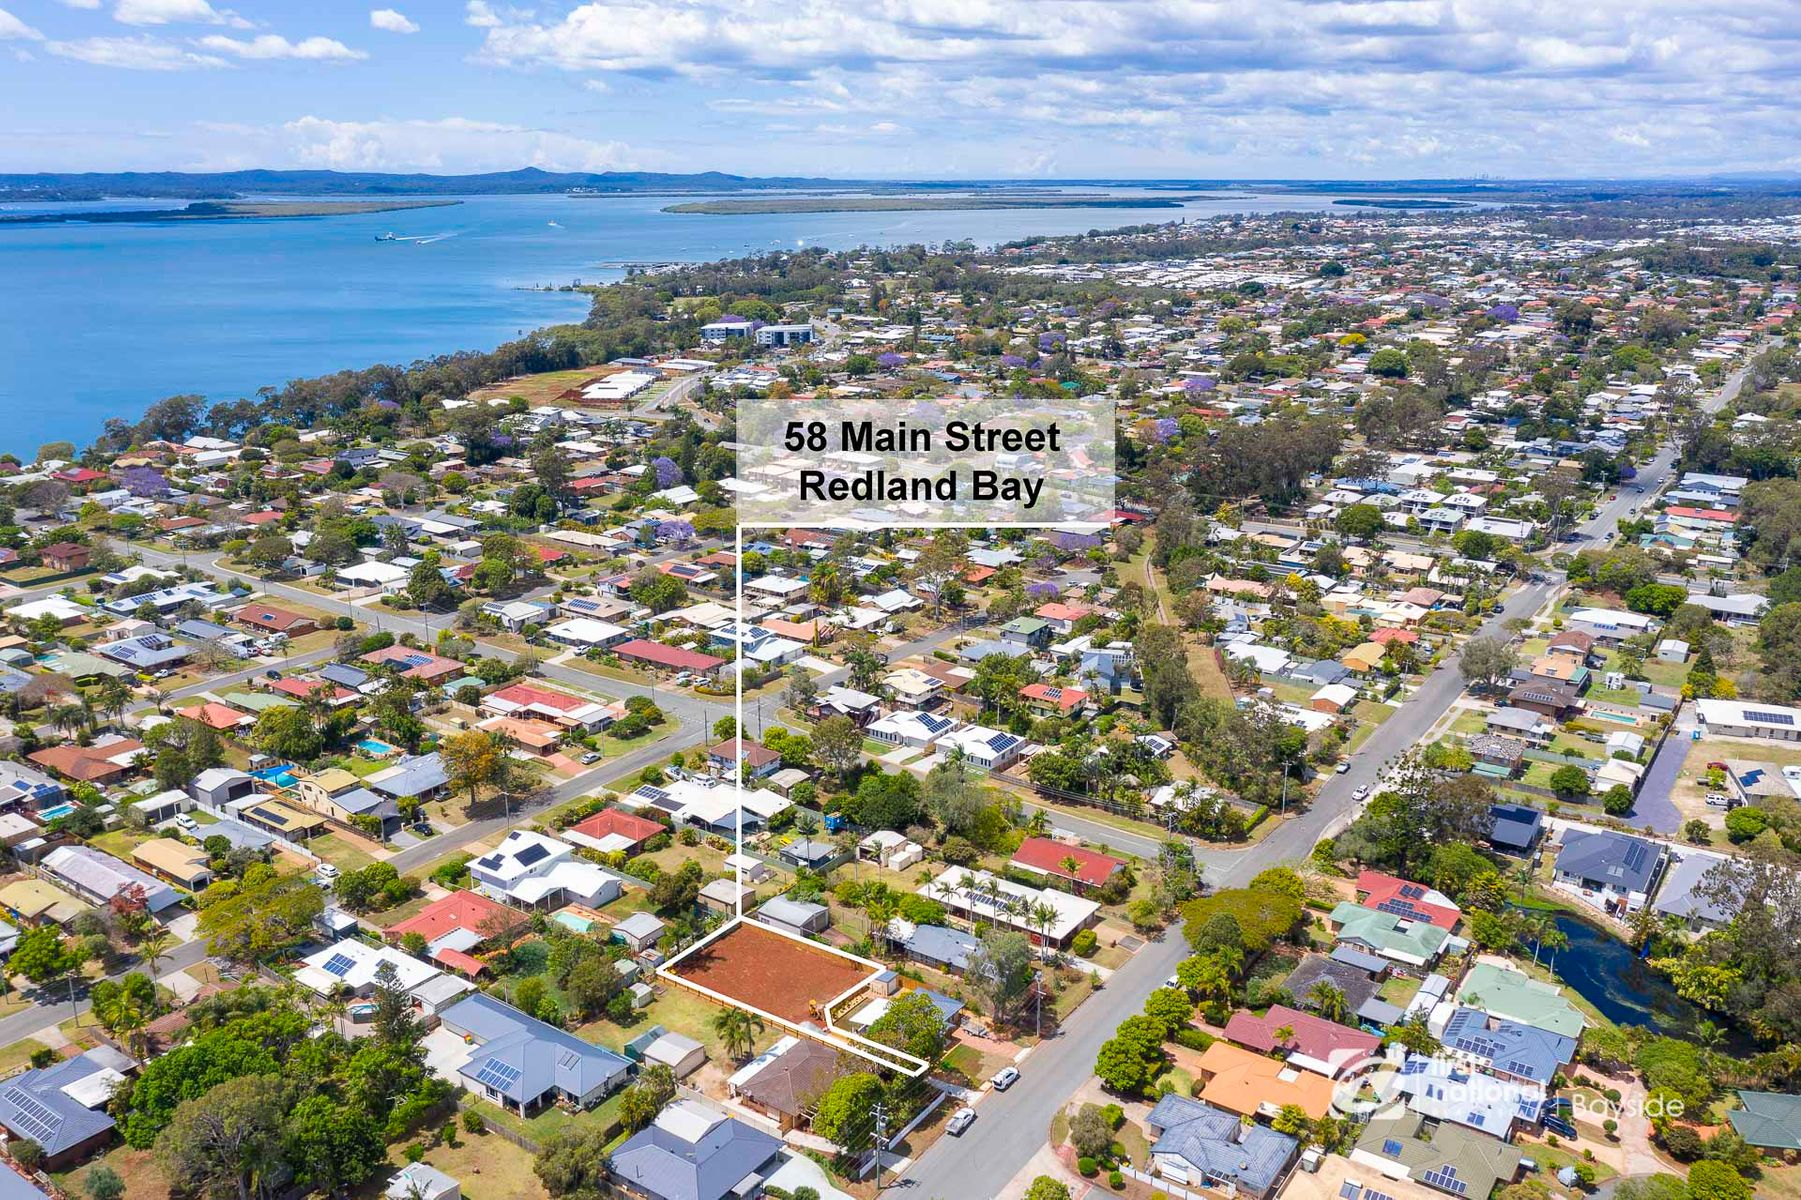 58 Main Street, Redland Bay, QLD 4165